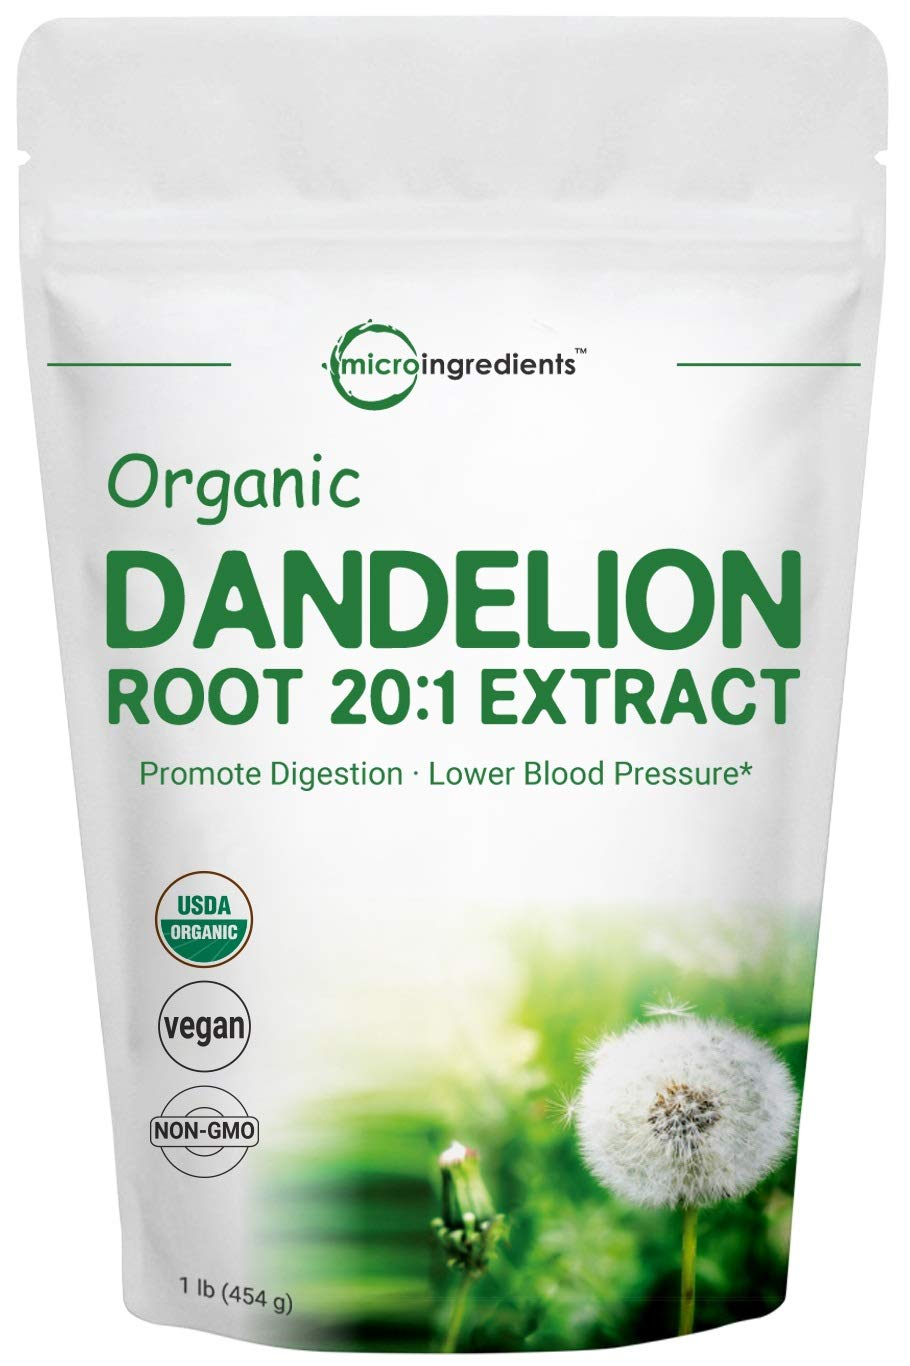 Sustainably US Grown, Organic Dandelion Root Powder, 1 Pound (16 Ounce), Strong Liver Health Support, Non-GMO and Vegan Friendly